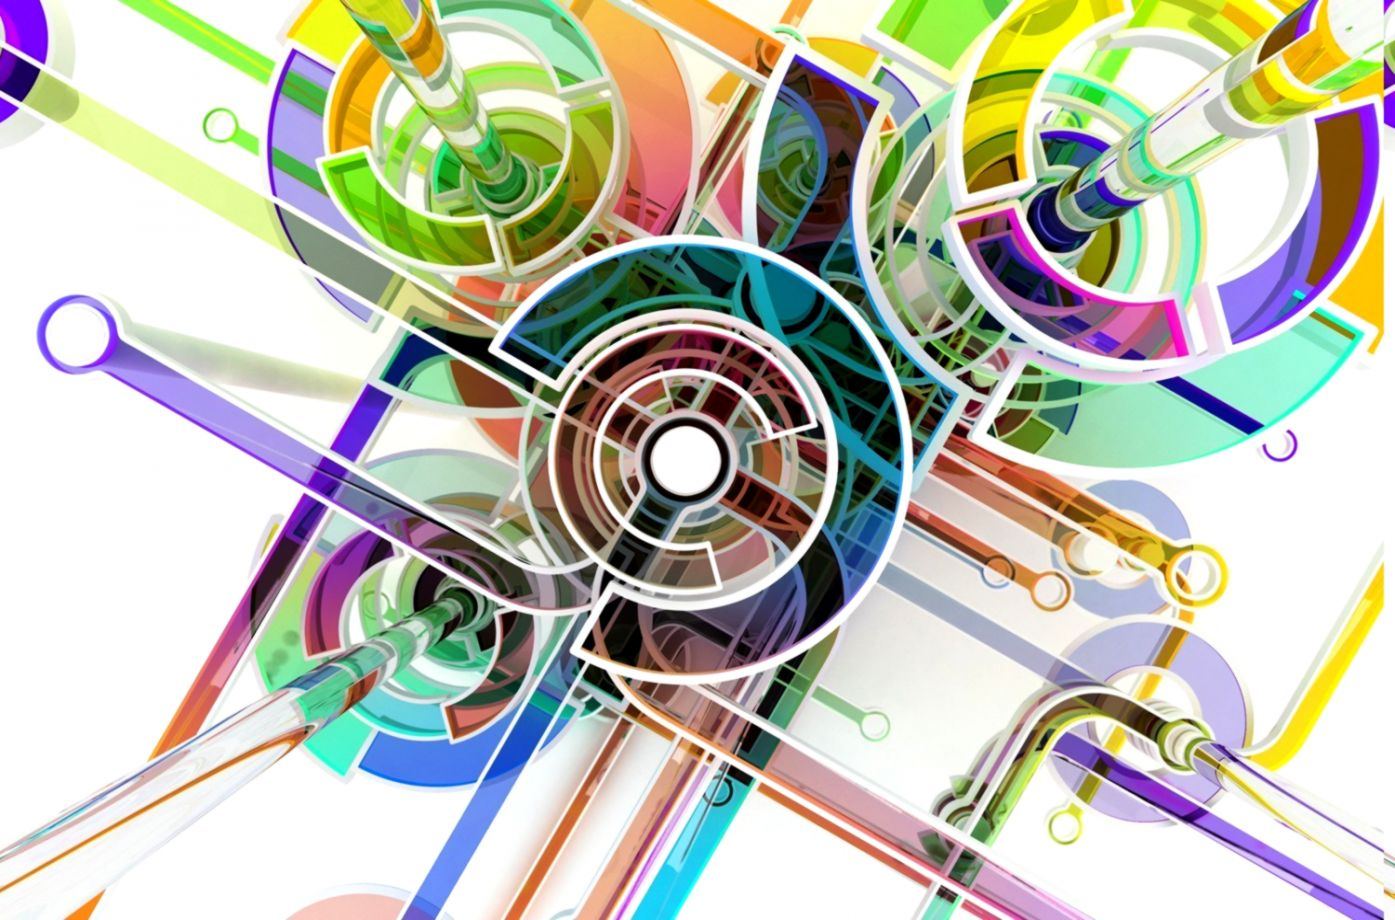 Wallpaper 1500x1000 Px 3D Abstract Circle Colorful Digital